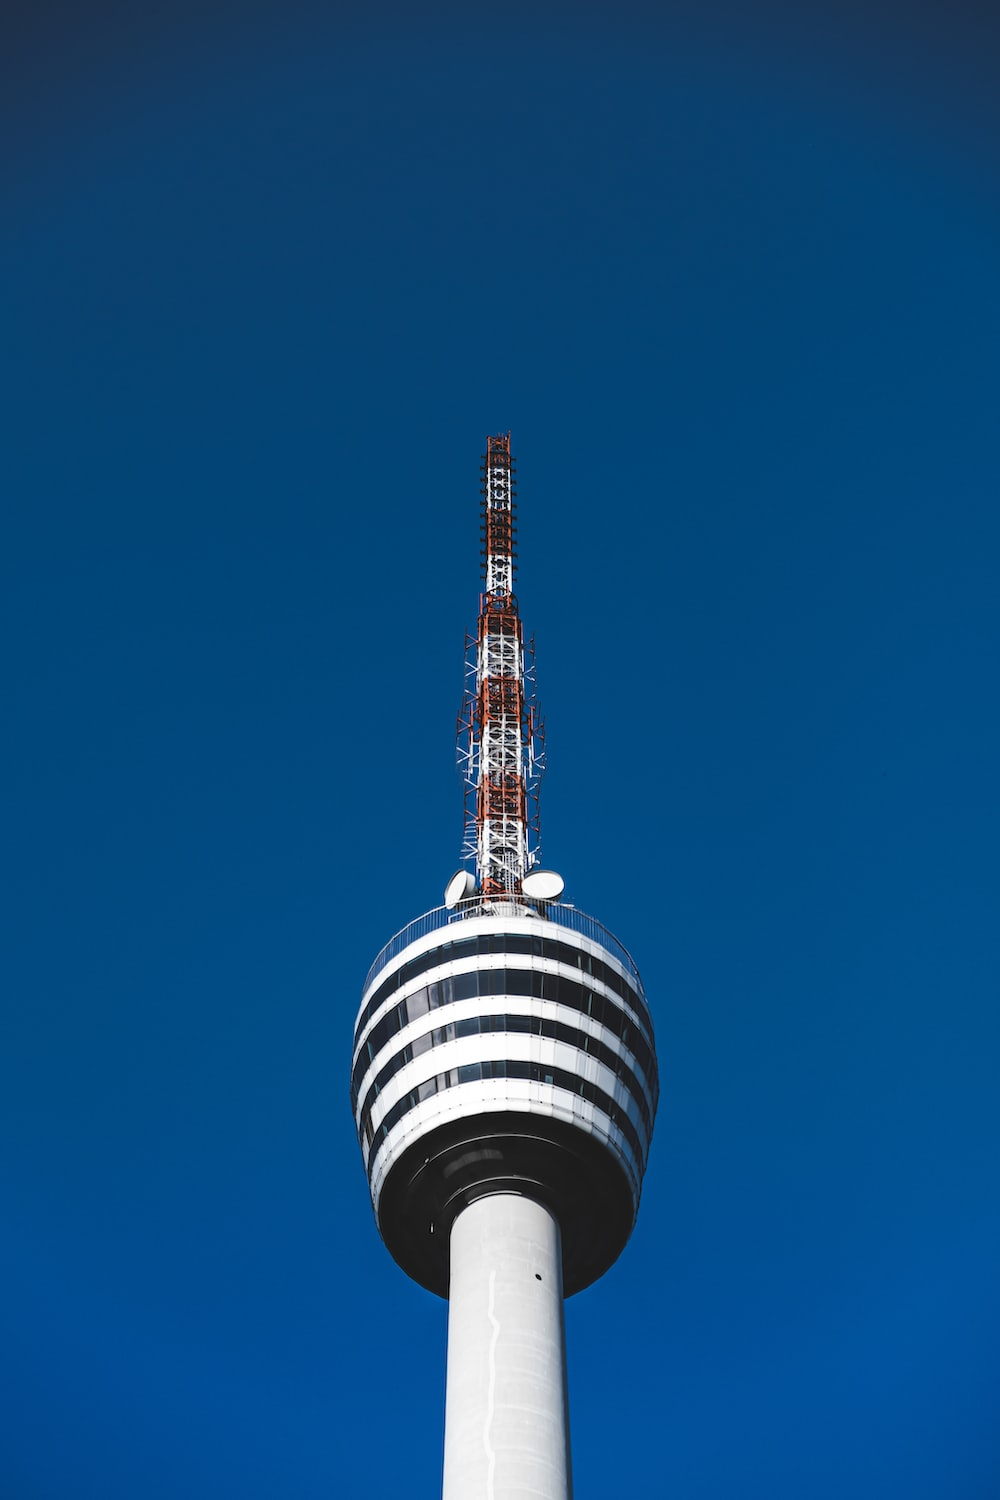 white and black tower under blue sky during daytime